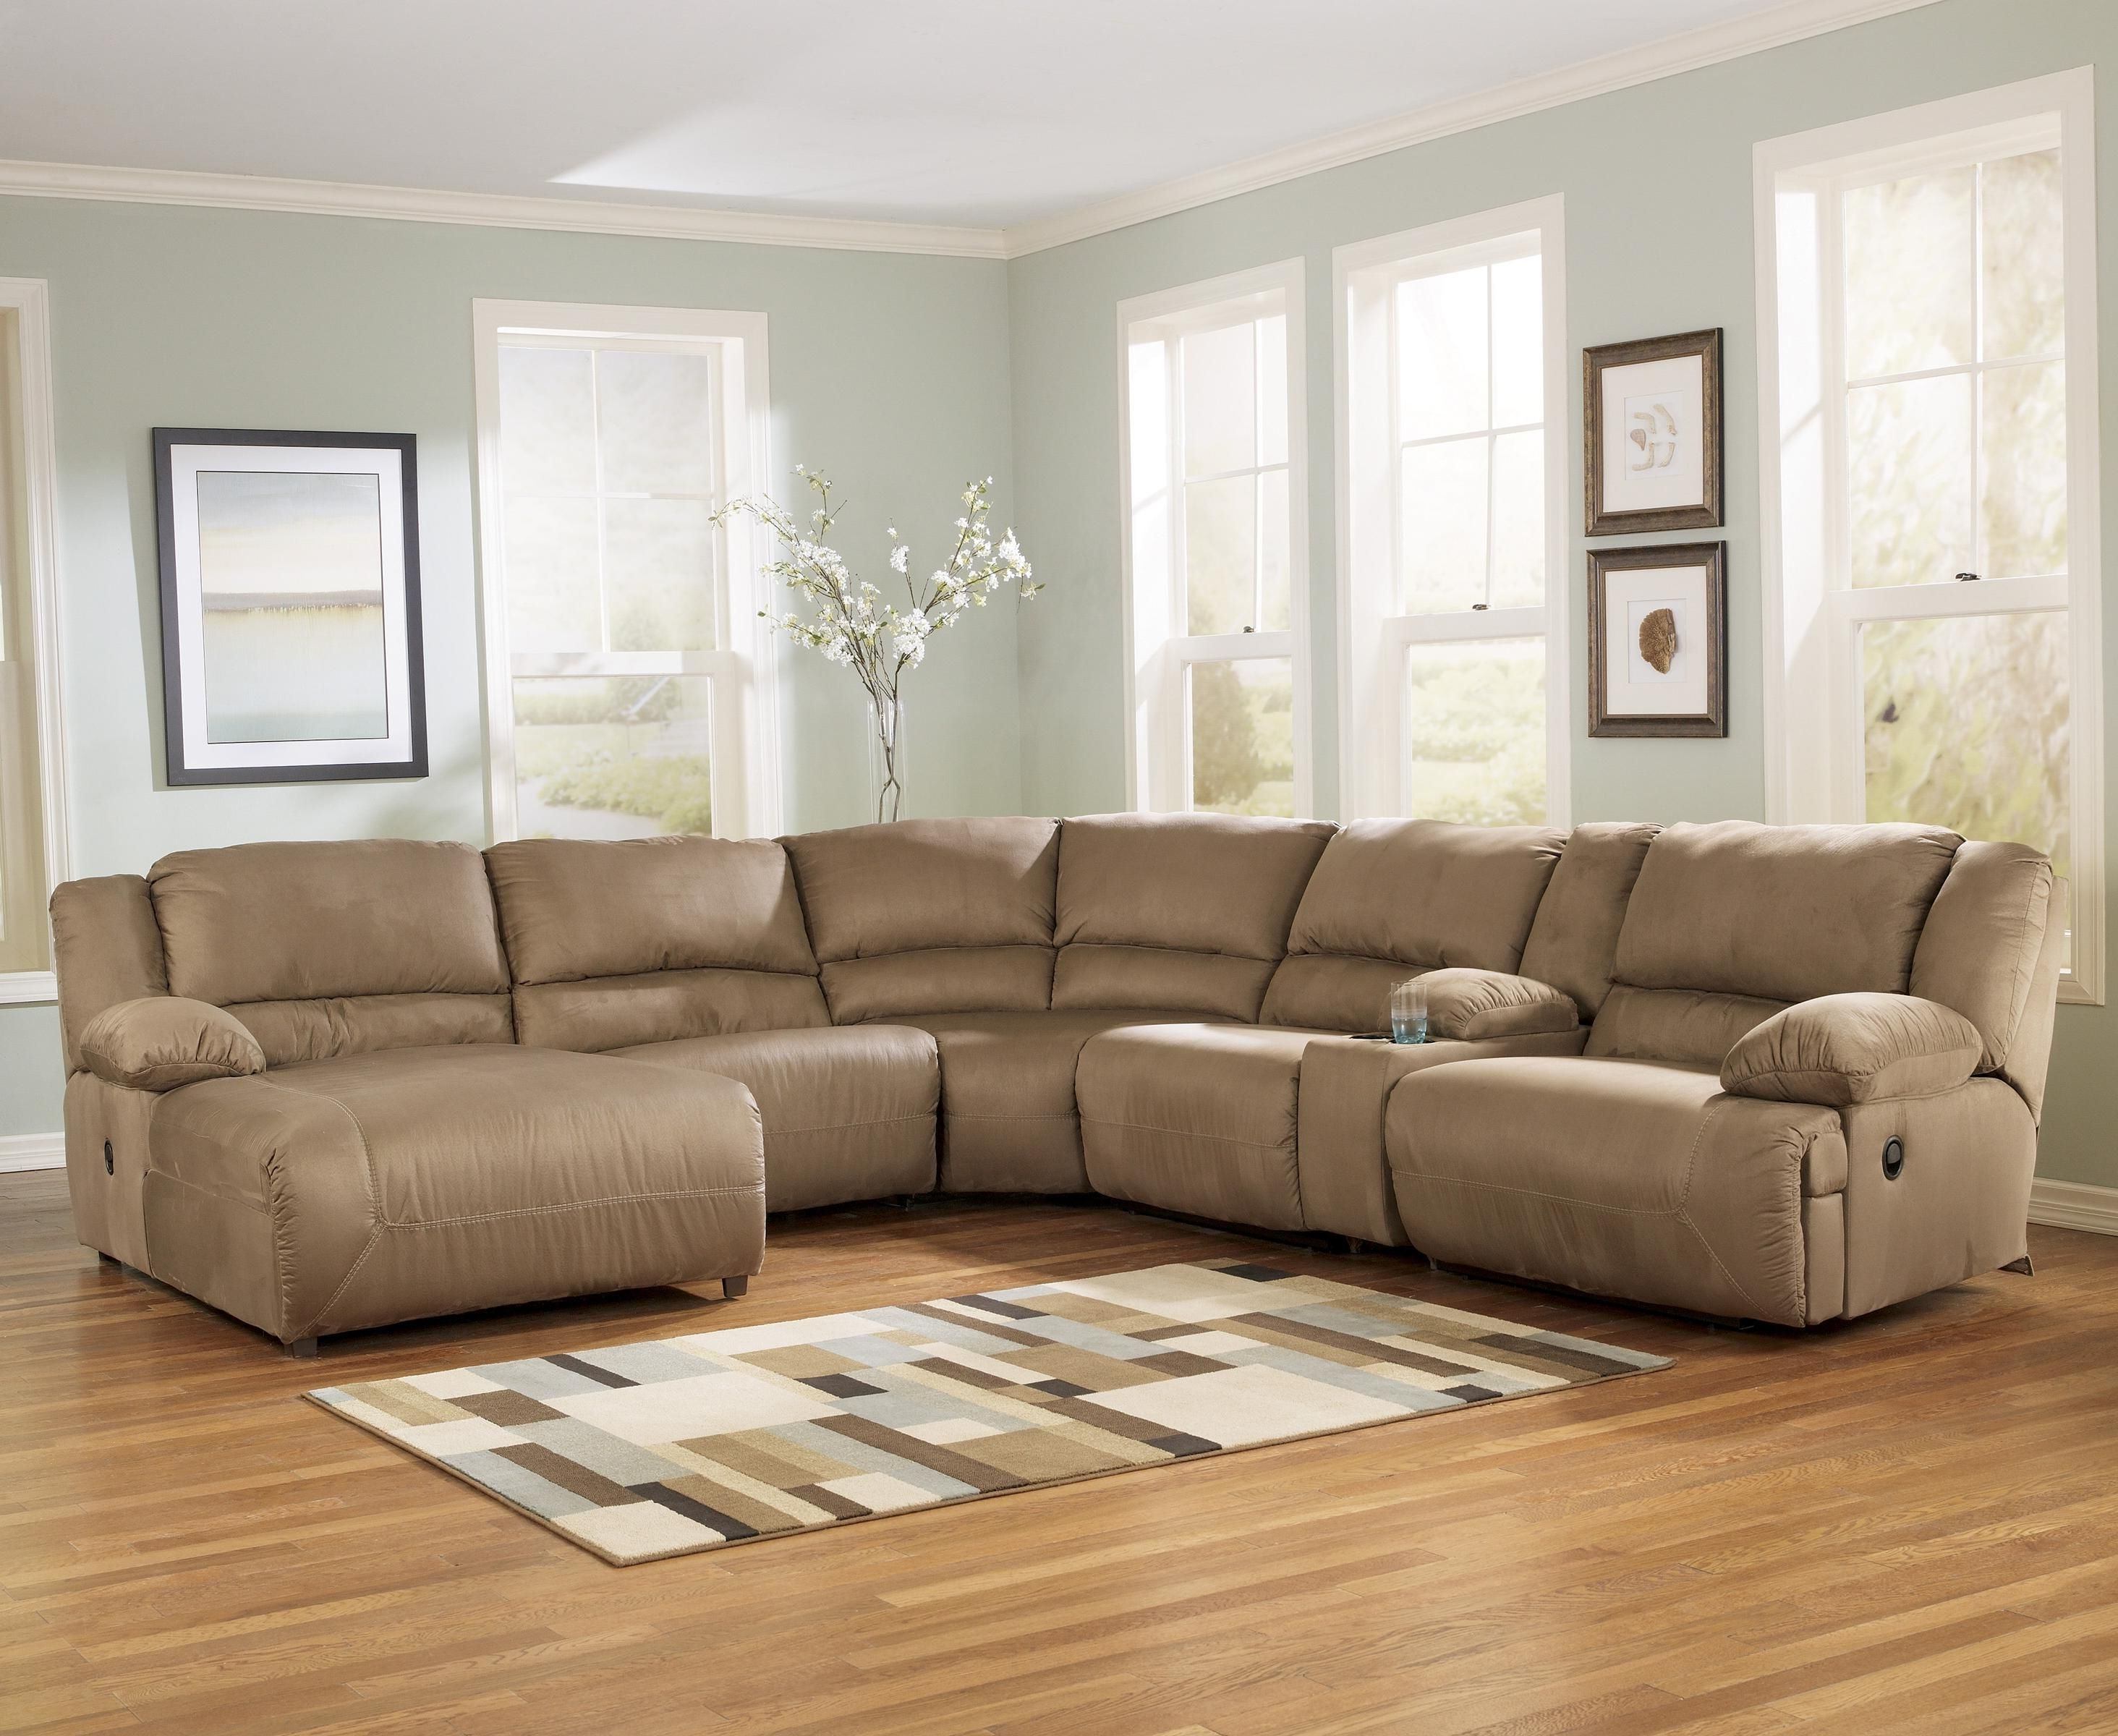 St Cloud Mn Sectional Sofas With Well Liked Hogan – Mocha 6 Piece Motion Sectional With Right Chaise And (View 12 of 15)